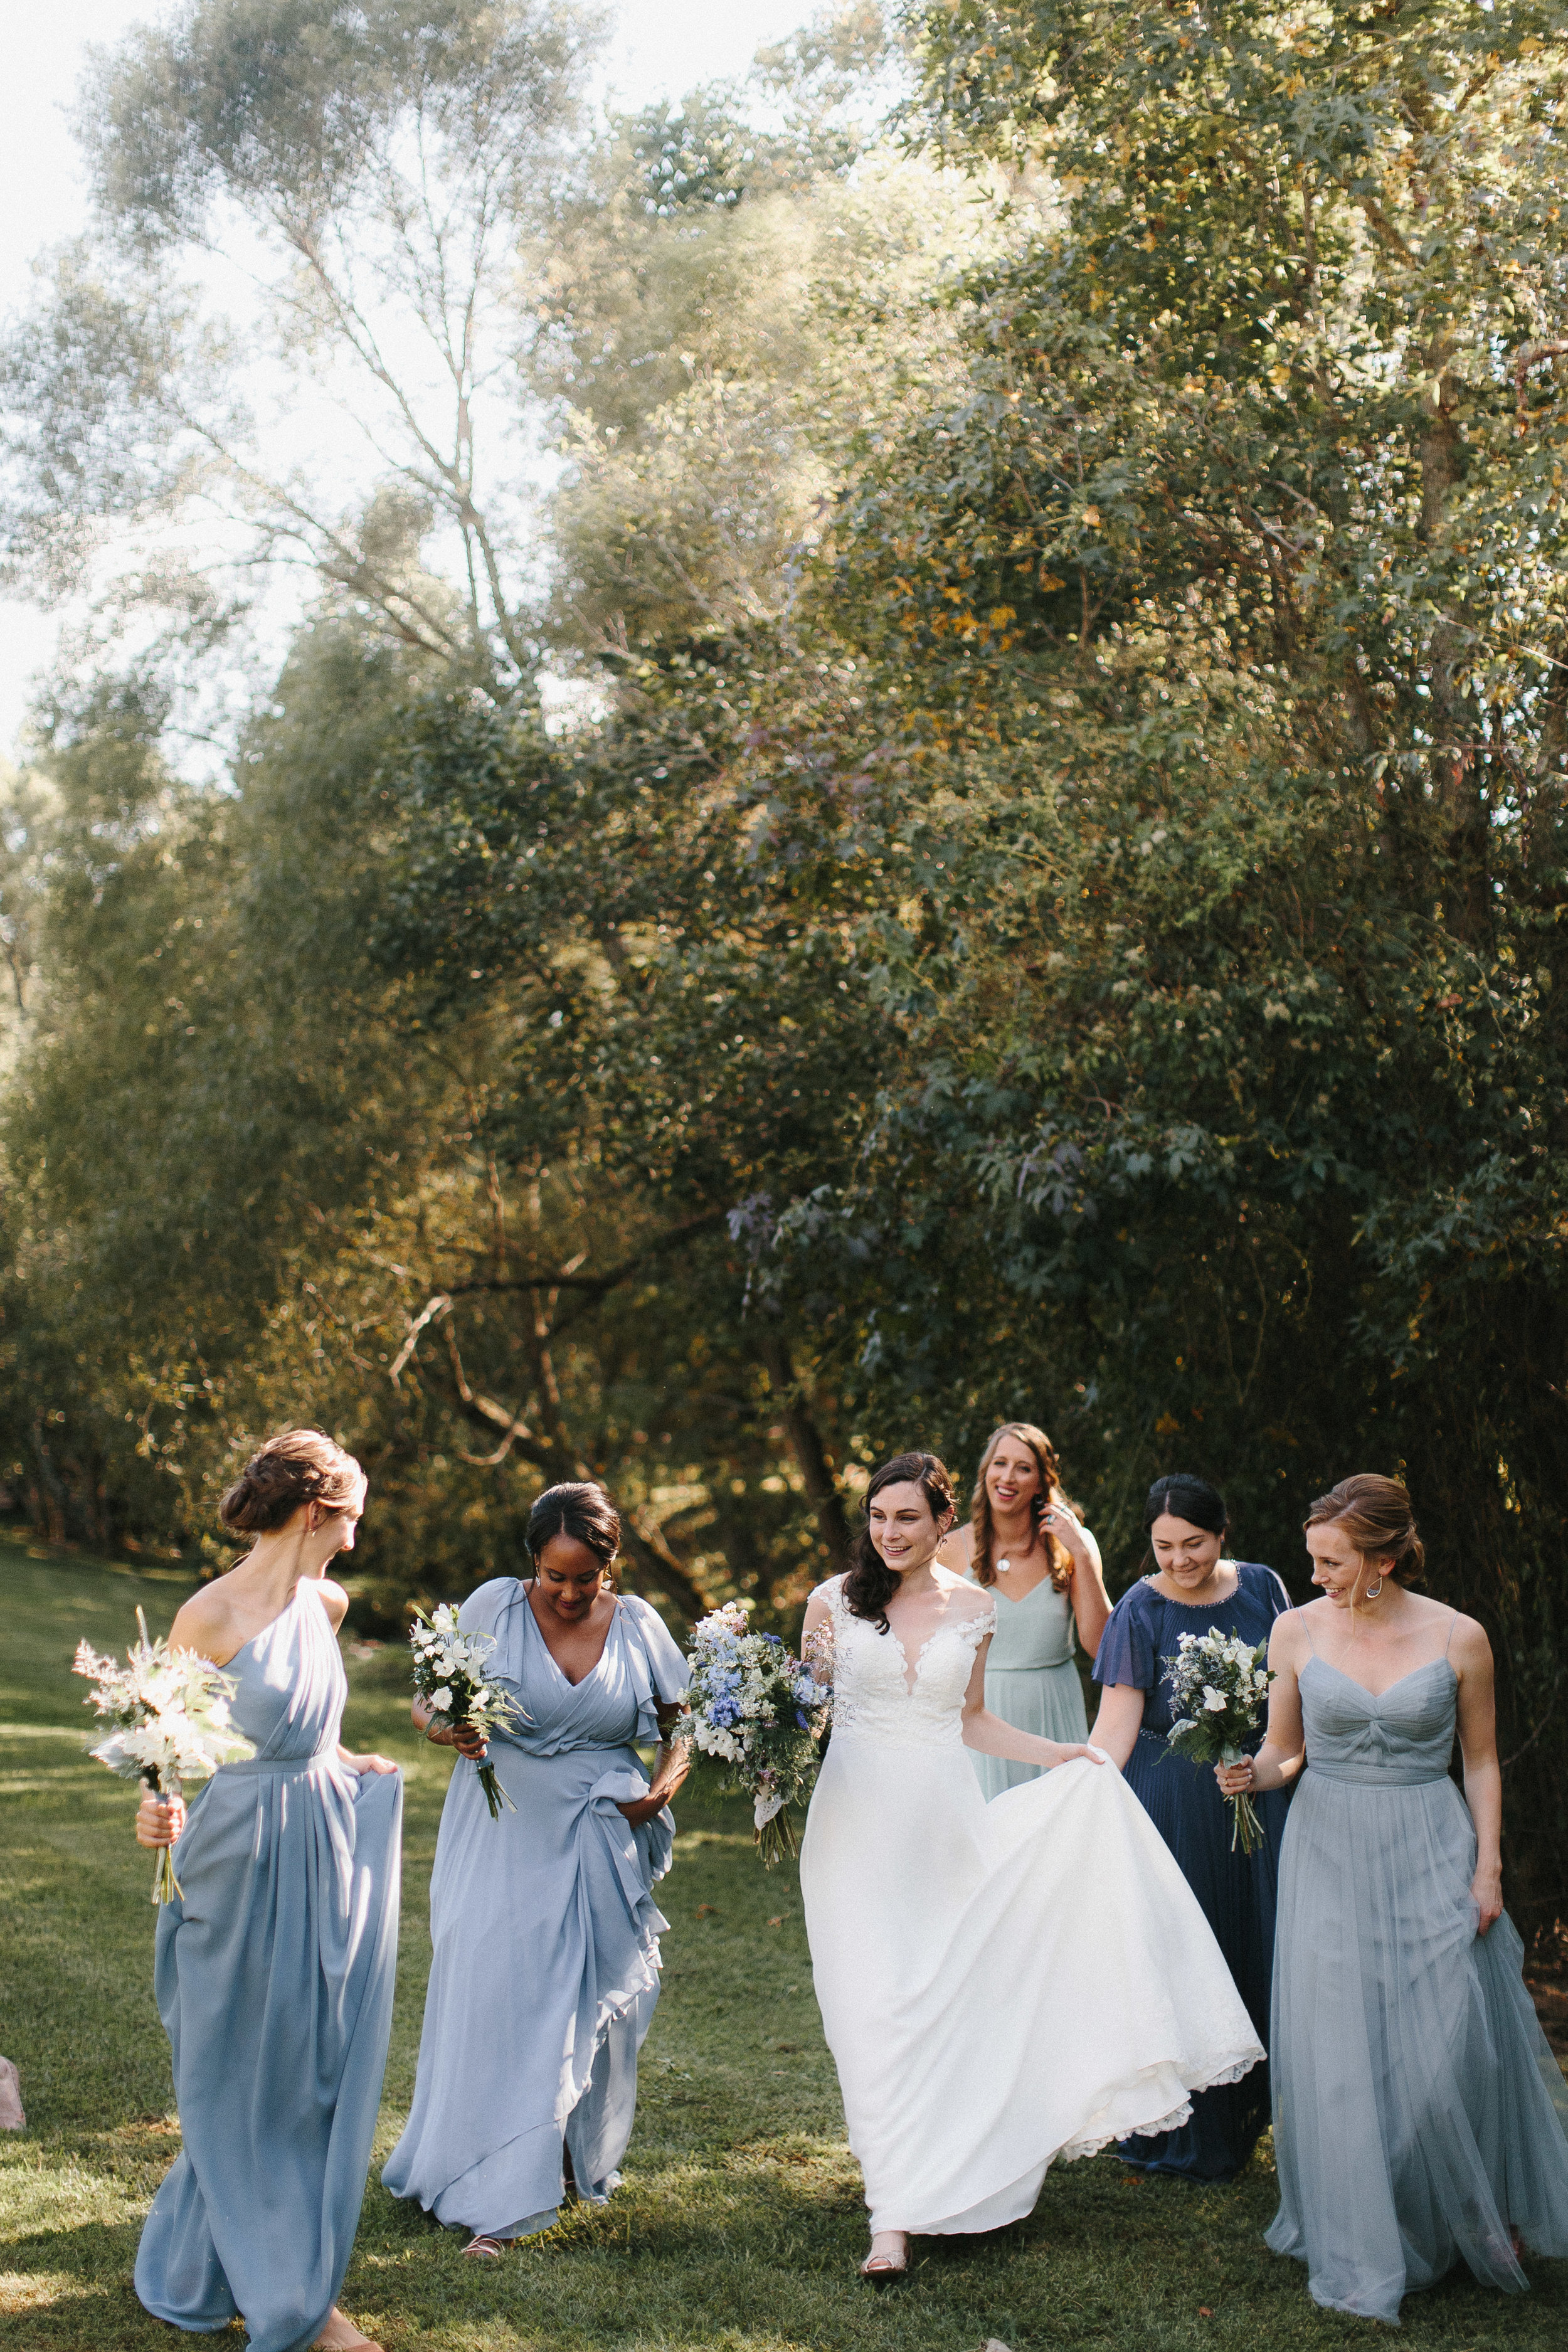 cleveland_georgia_mountain_laurel_farm_natural_classic_timeless_documentary_candid_wedding_emotional_photojournalism_river_west_1447.jpg